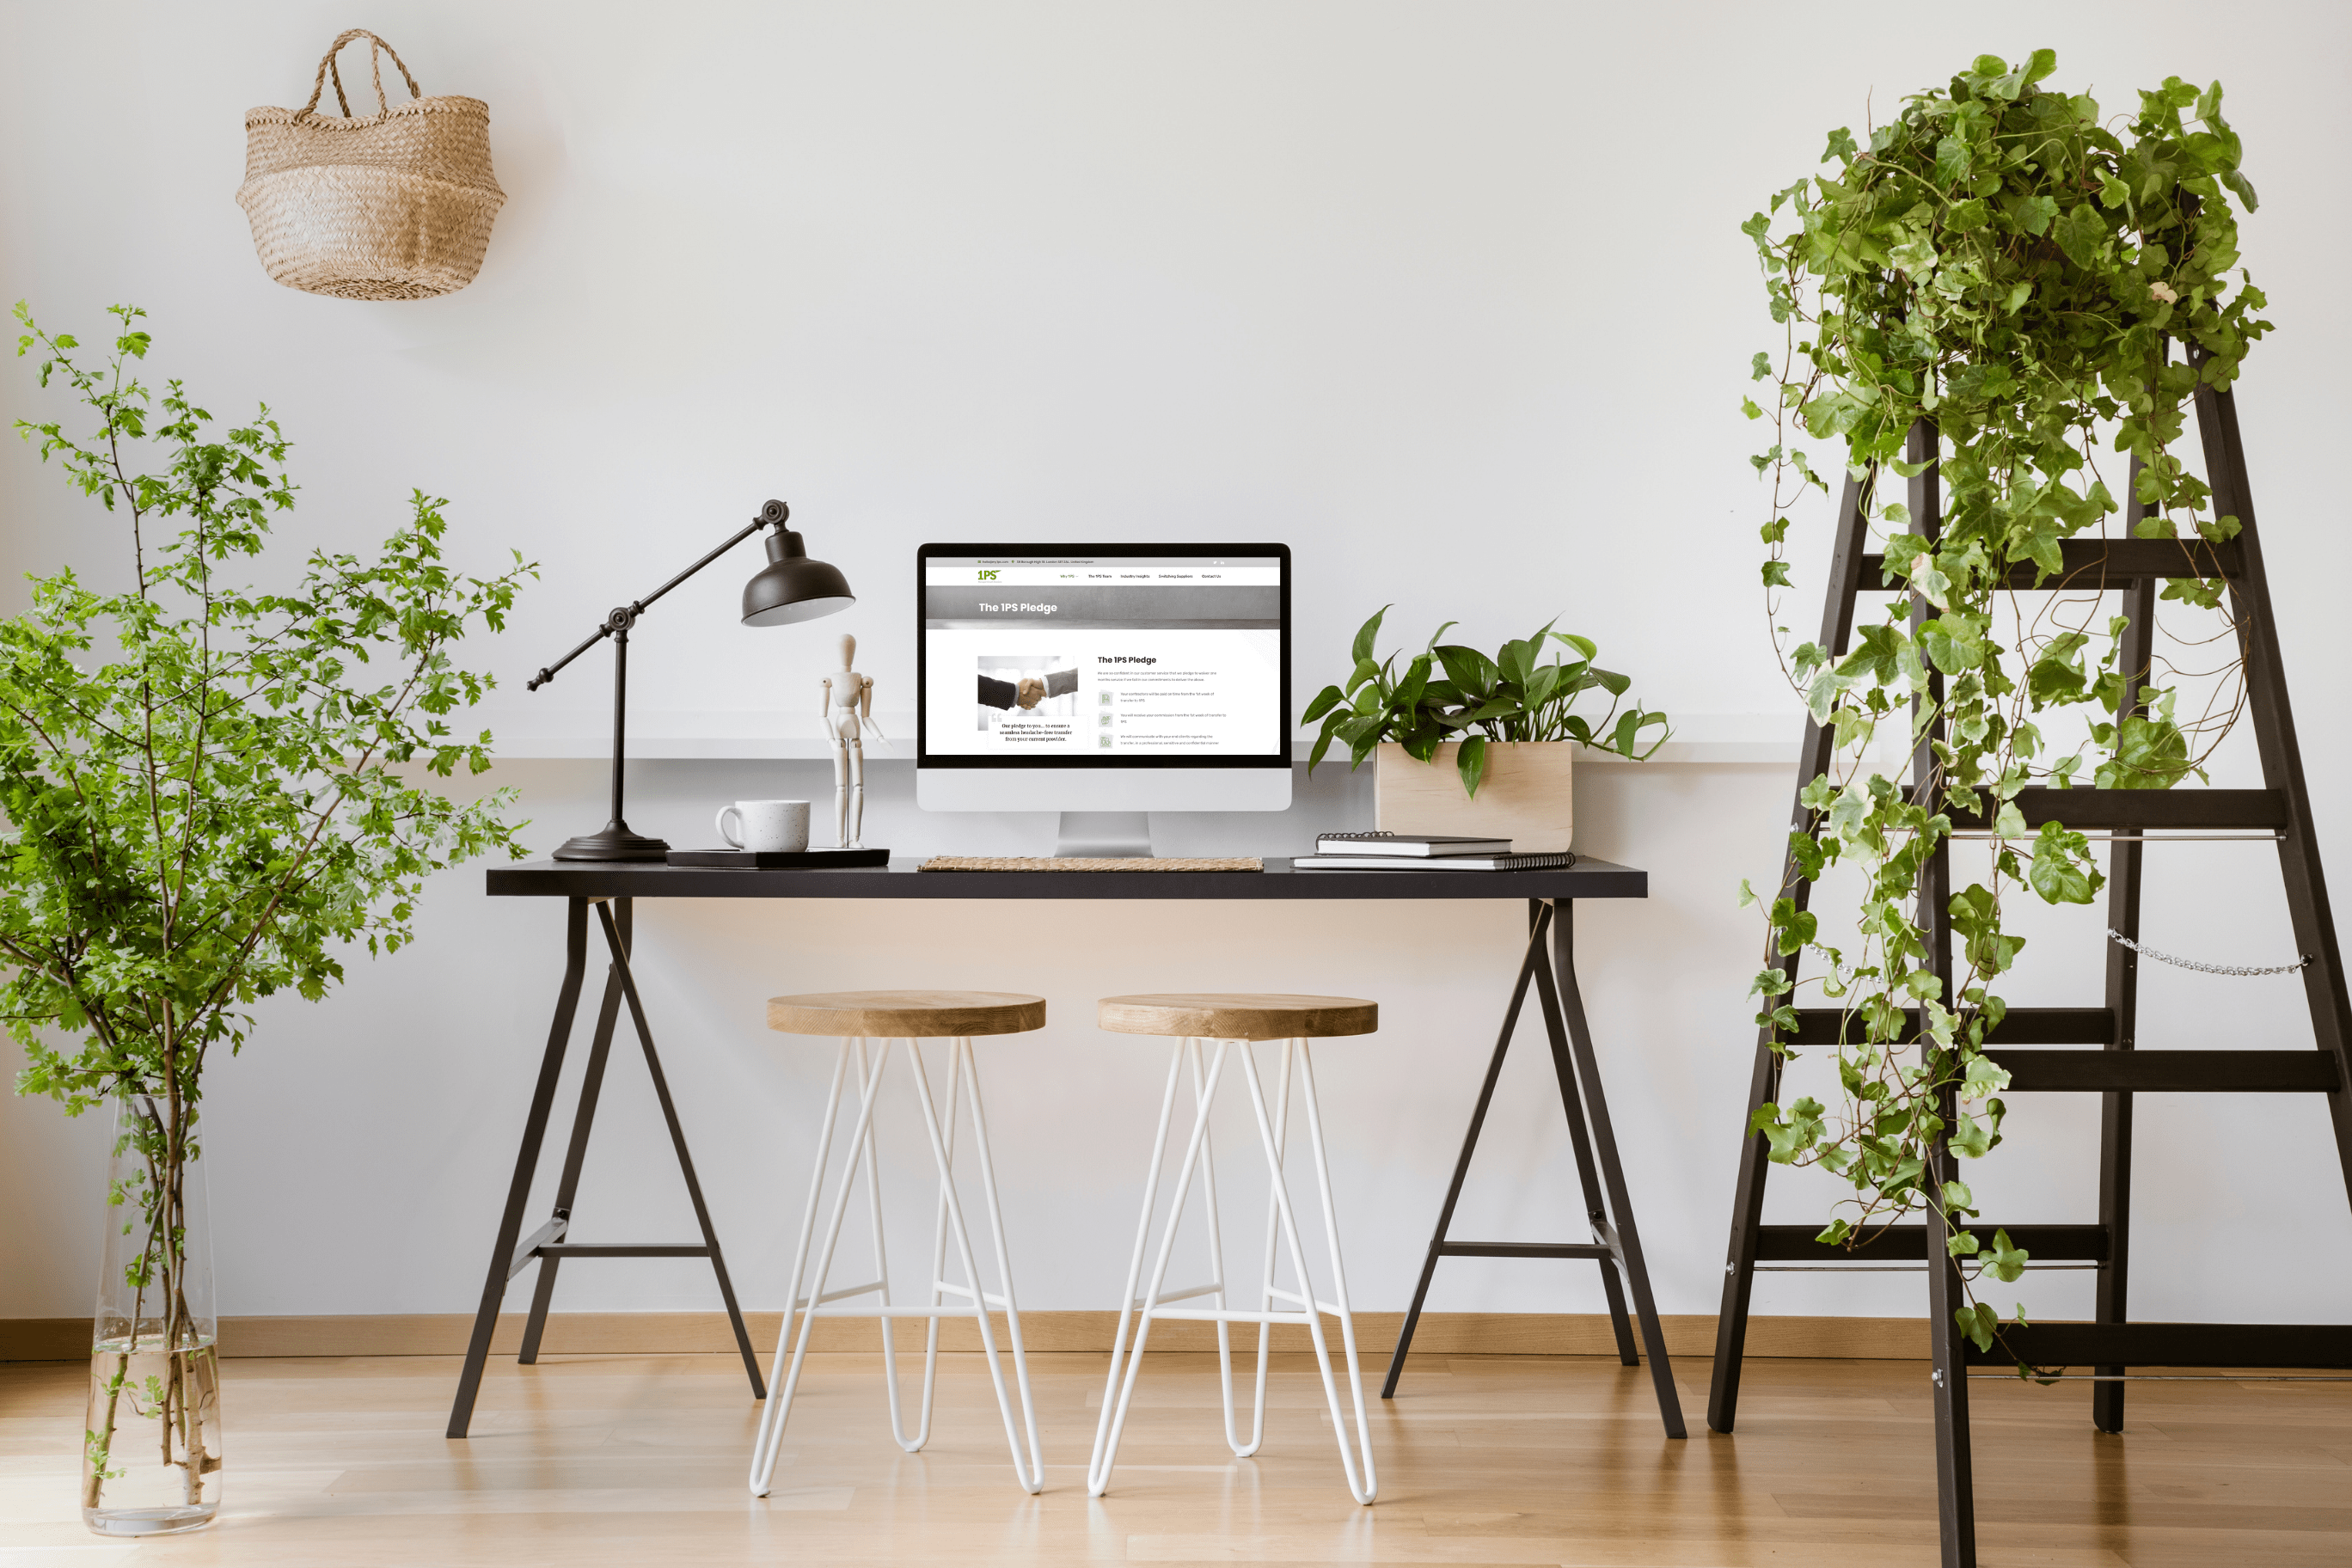 Laptop on table surrounded by plants